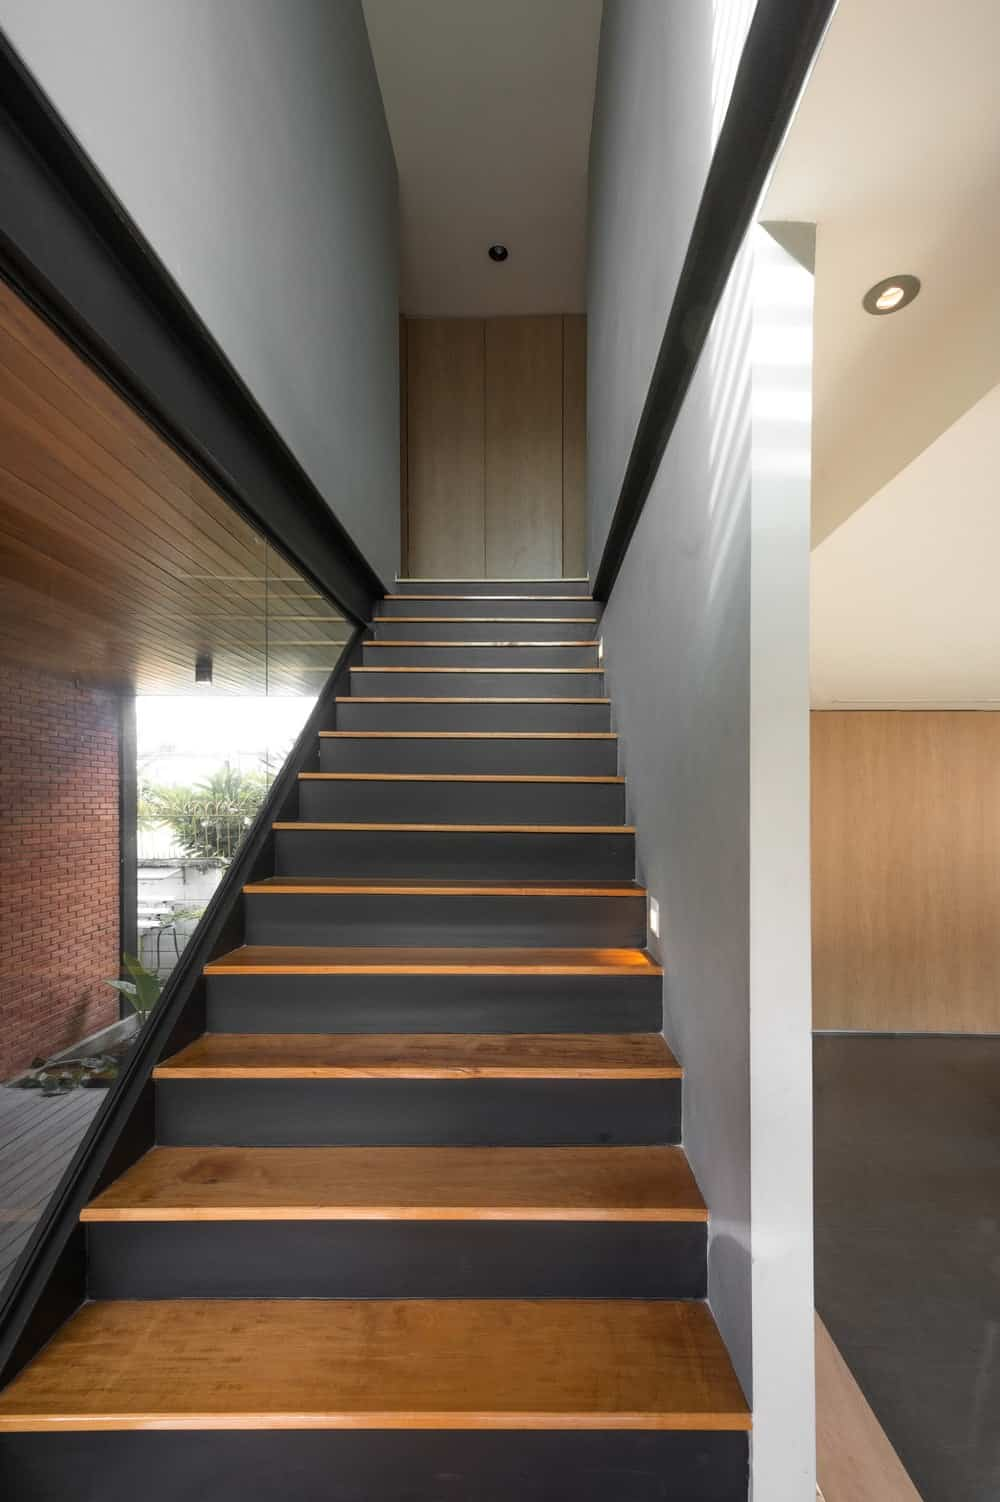 This is a close look at the staircase with wooden steps, metal beams and glass walls.